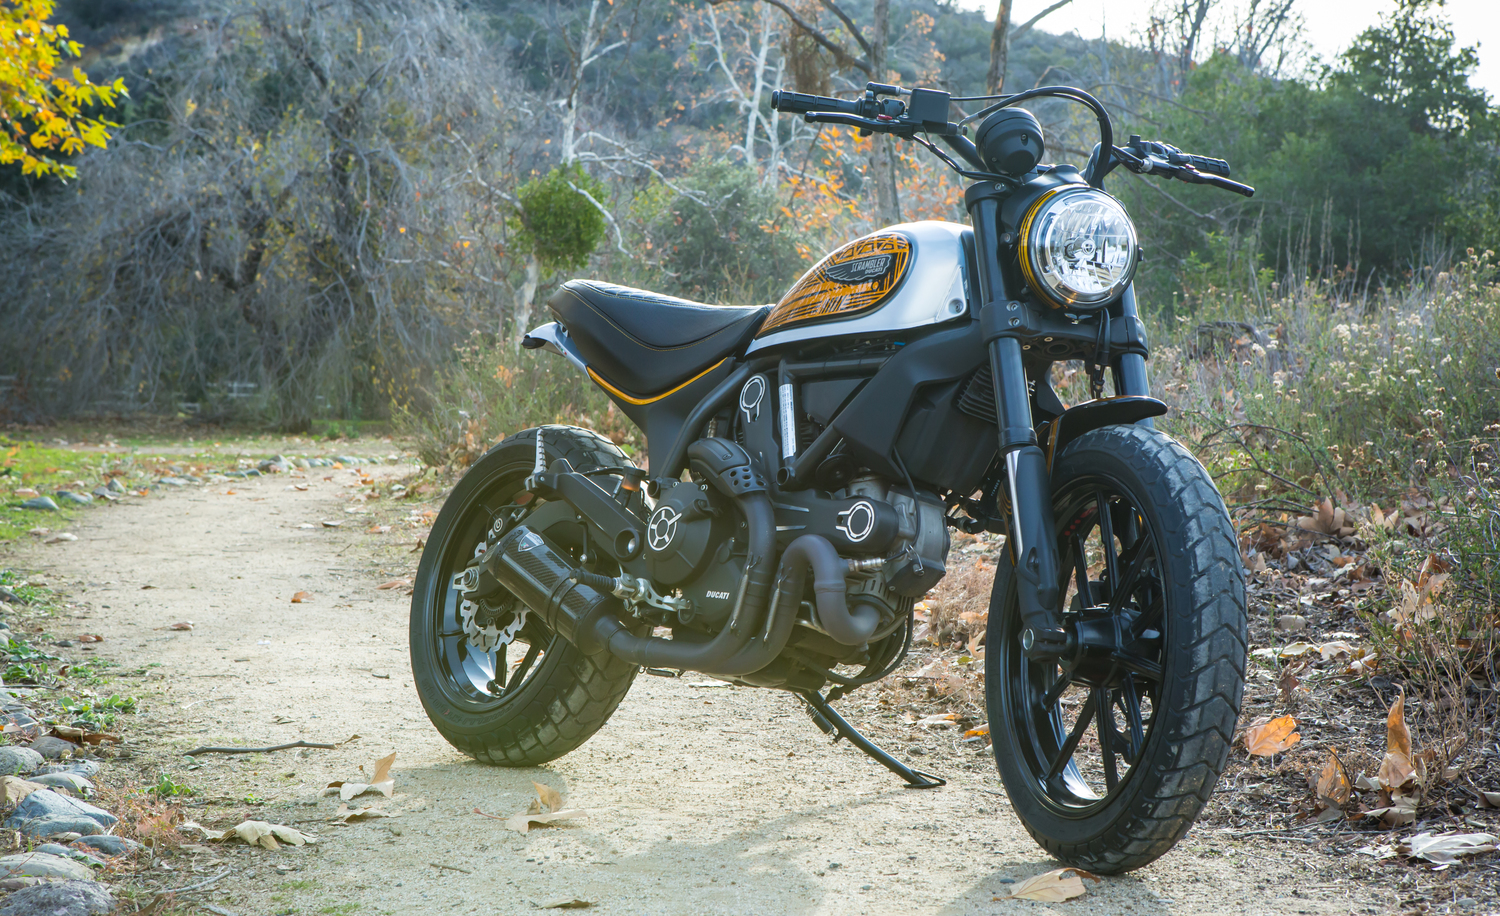 Anaheim+Rod+and+Custom+Ducati+Scrambler+Custom+Paint.jpg